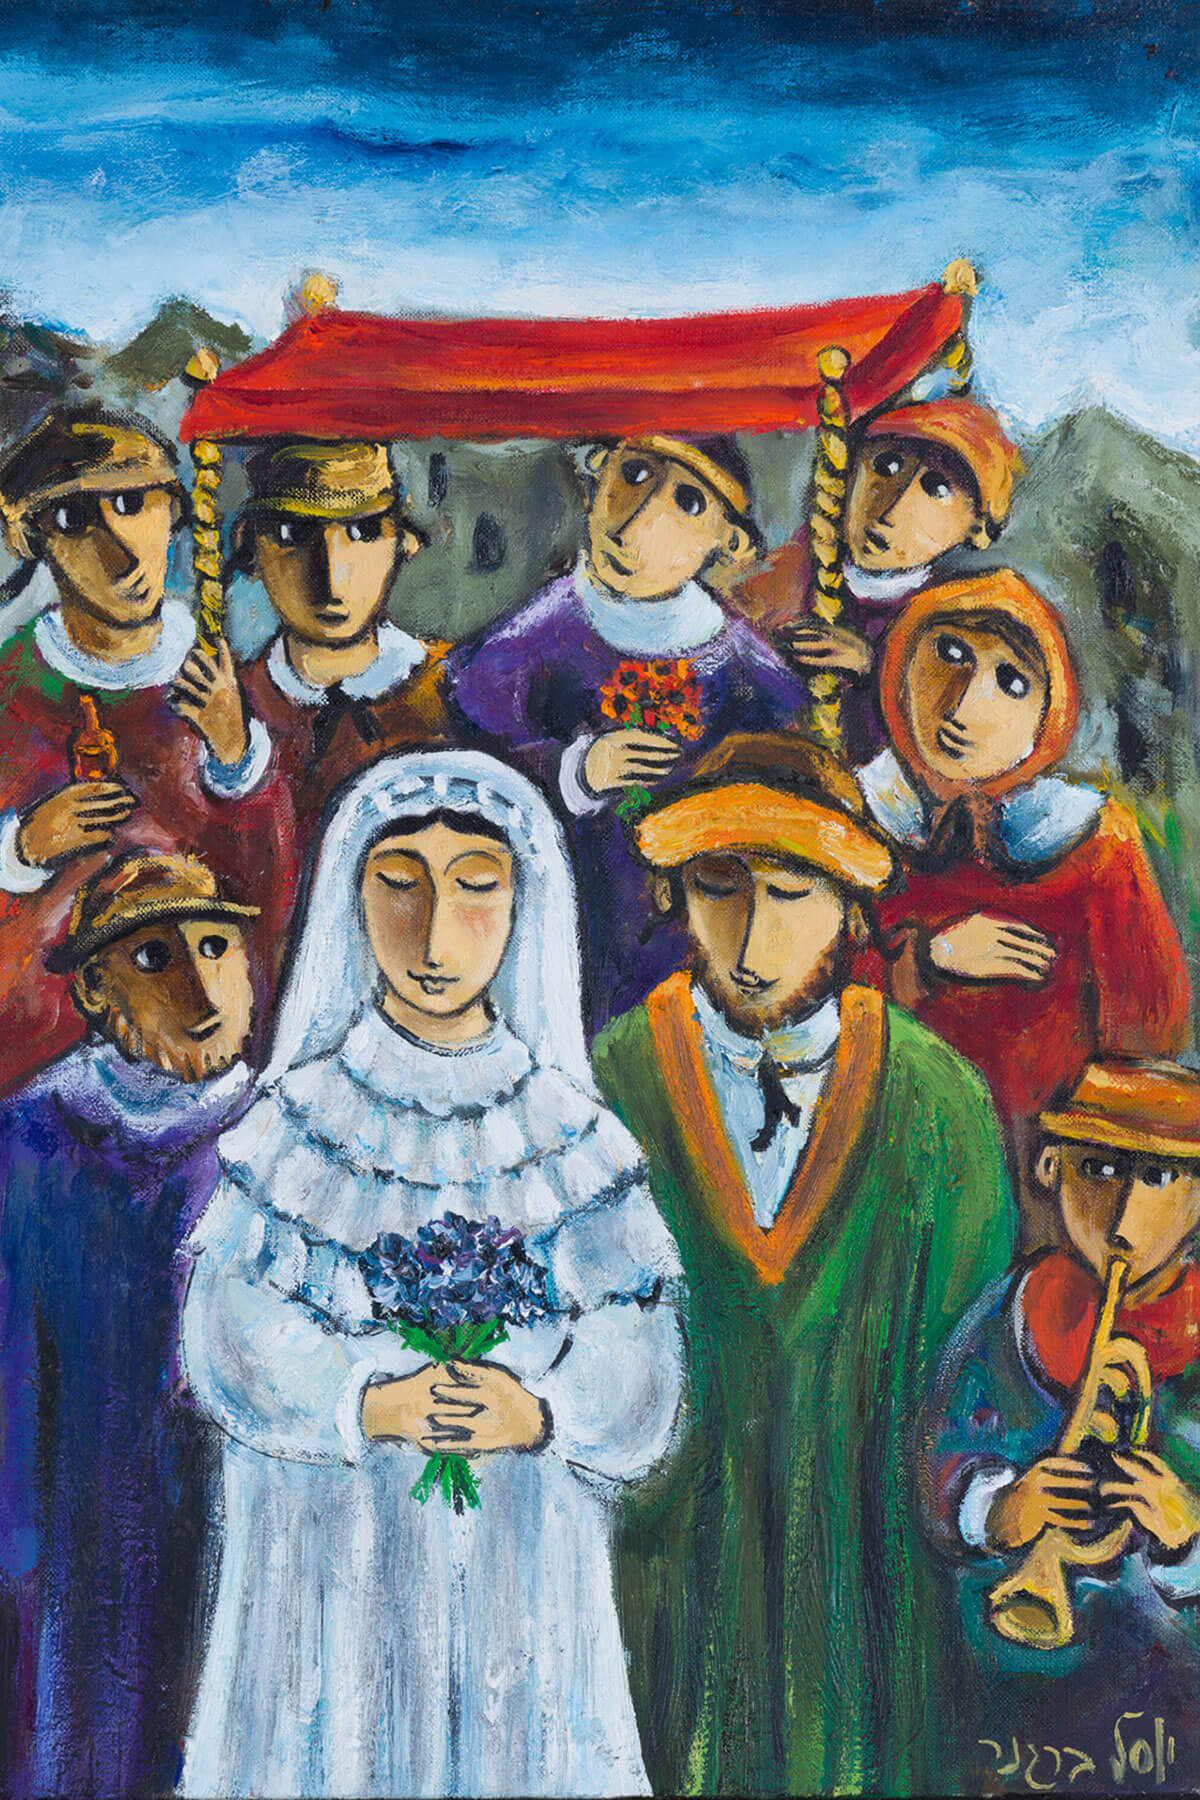 163. Wedding Scene by Yosl Bergner